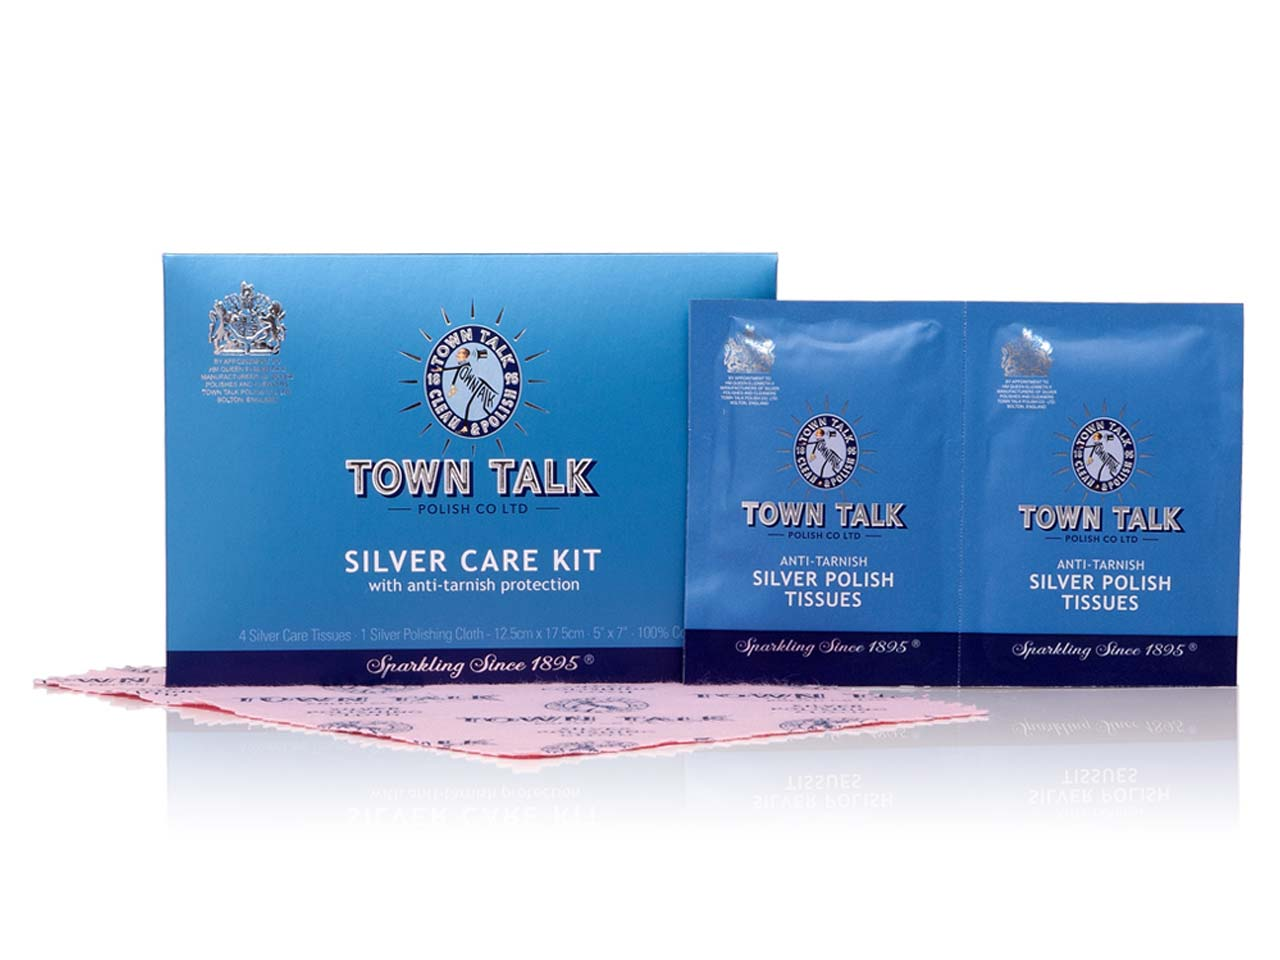 Town Talk Silver Care Kit